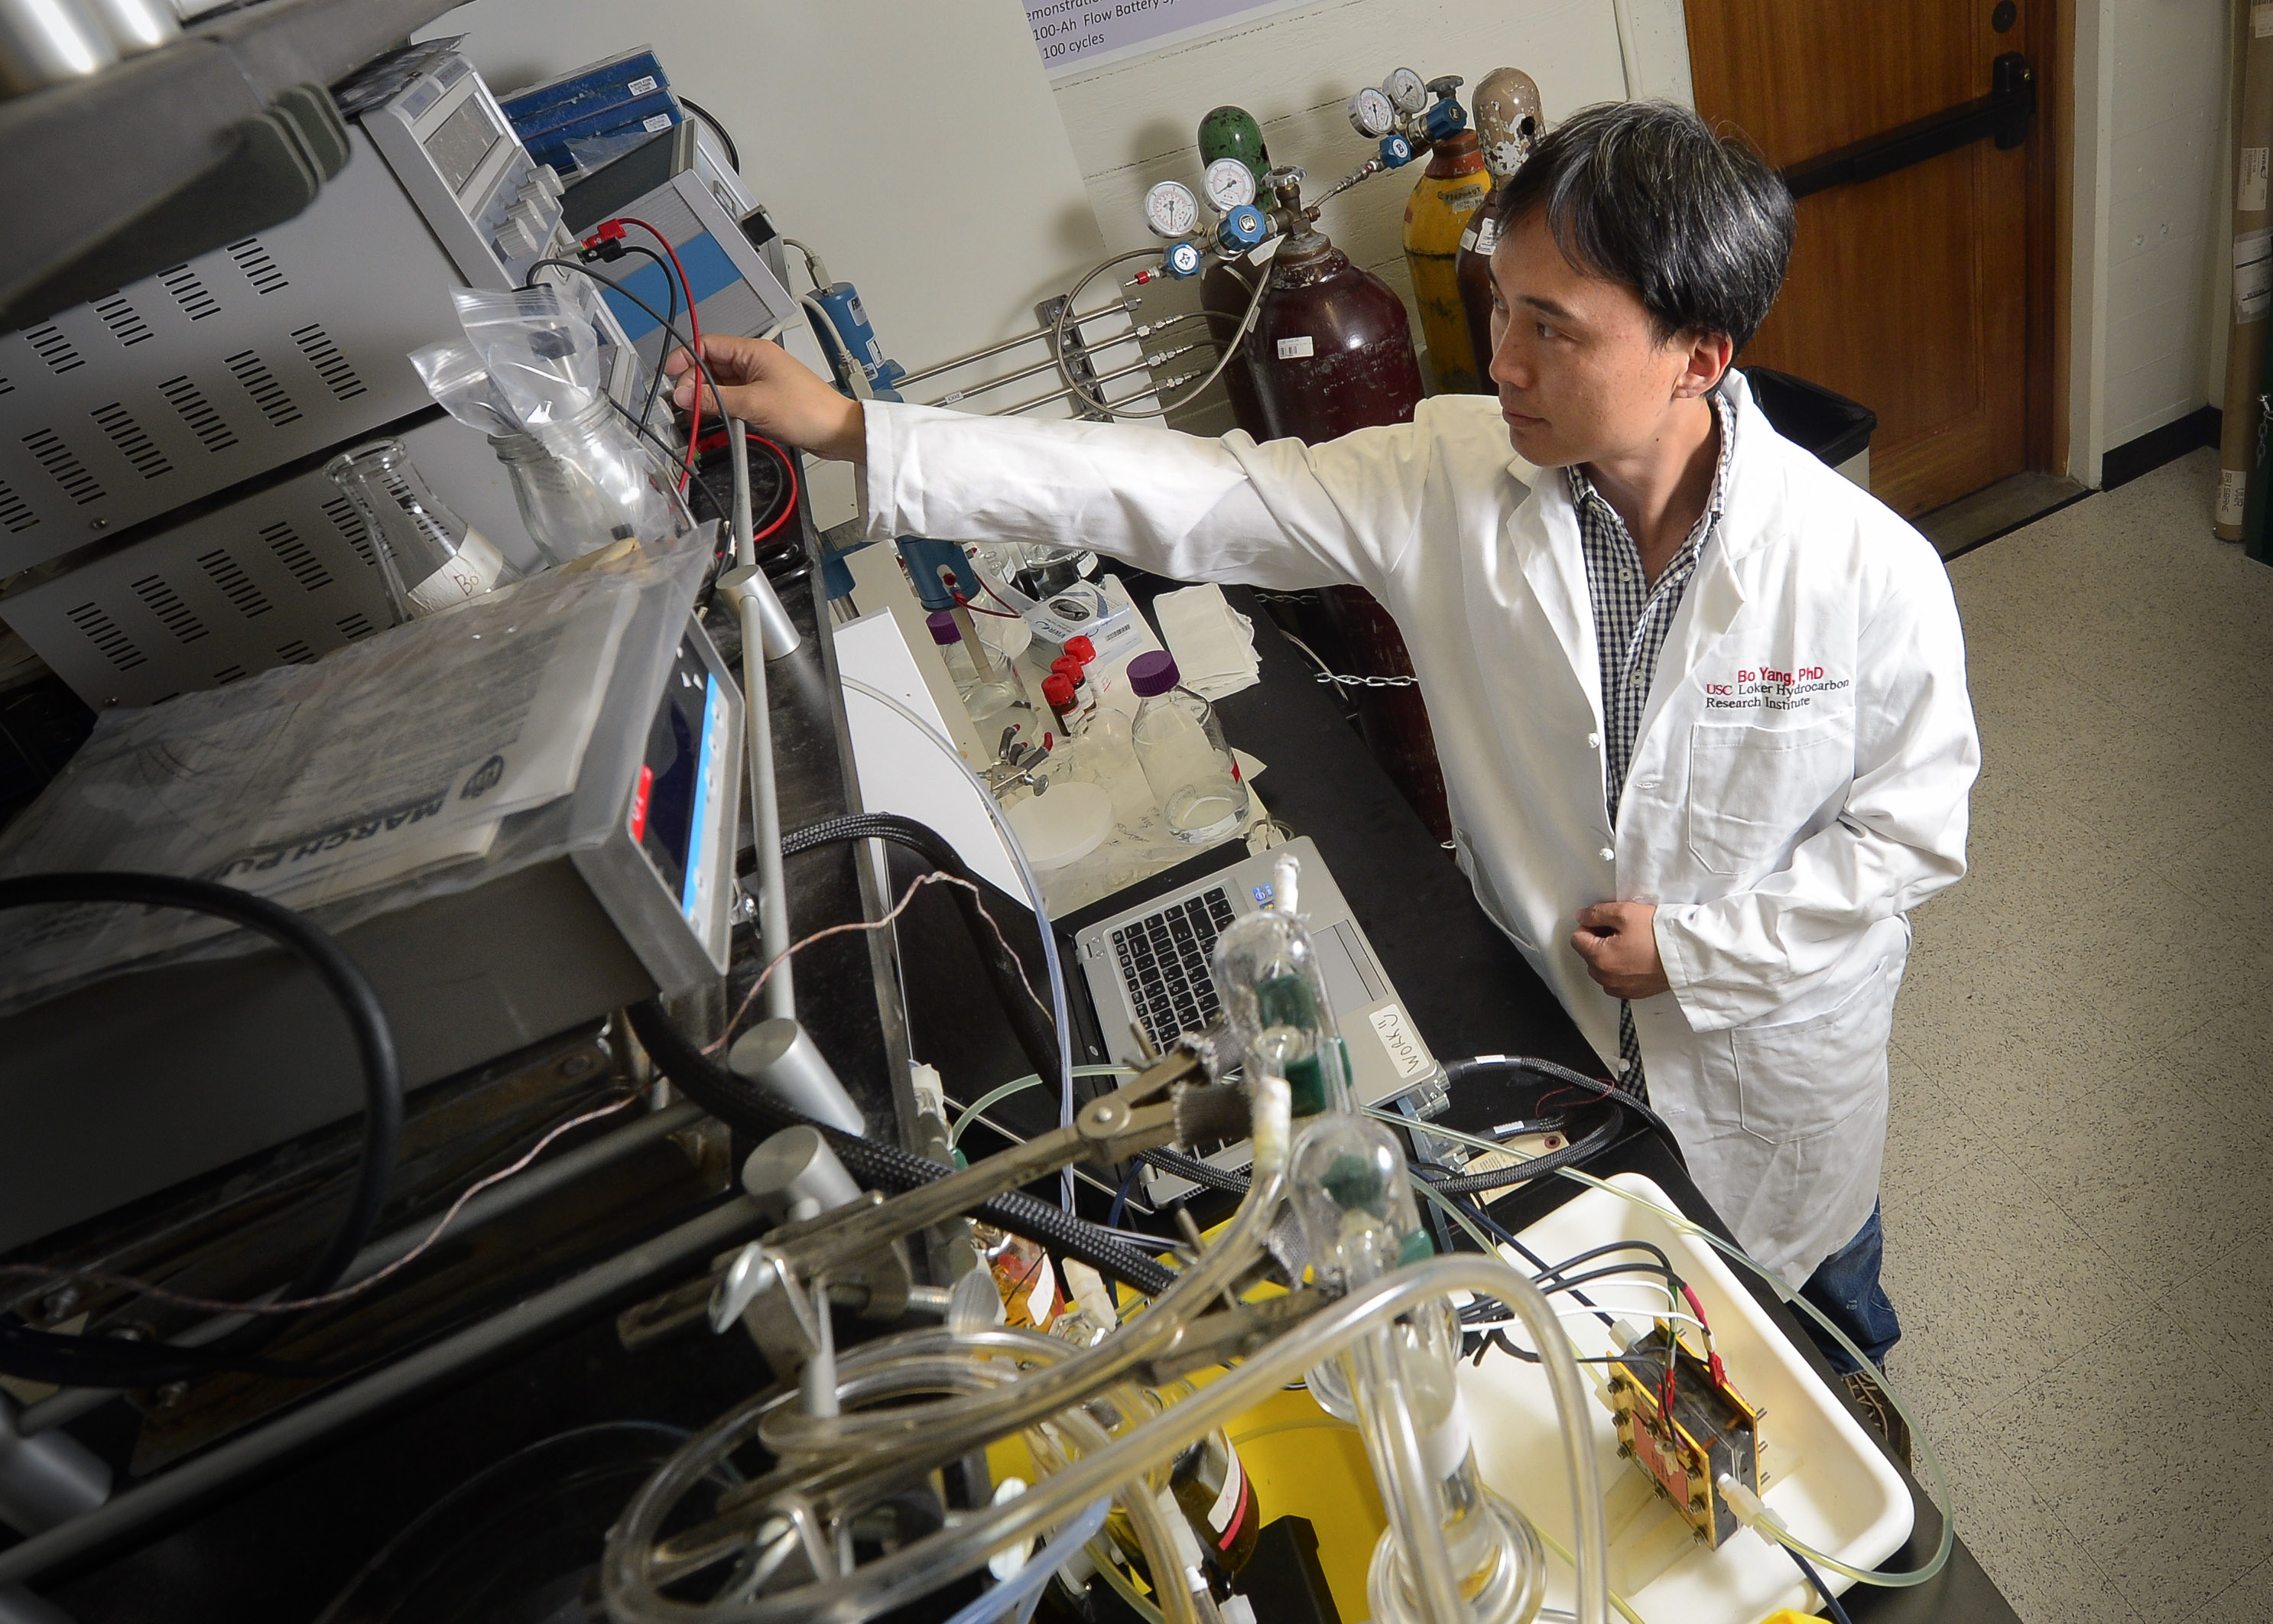 USC Post Doctorate Bo Yang working on the organic flow battery. Image courtesy of USC Photo / Gus Ruelas.